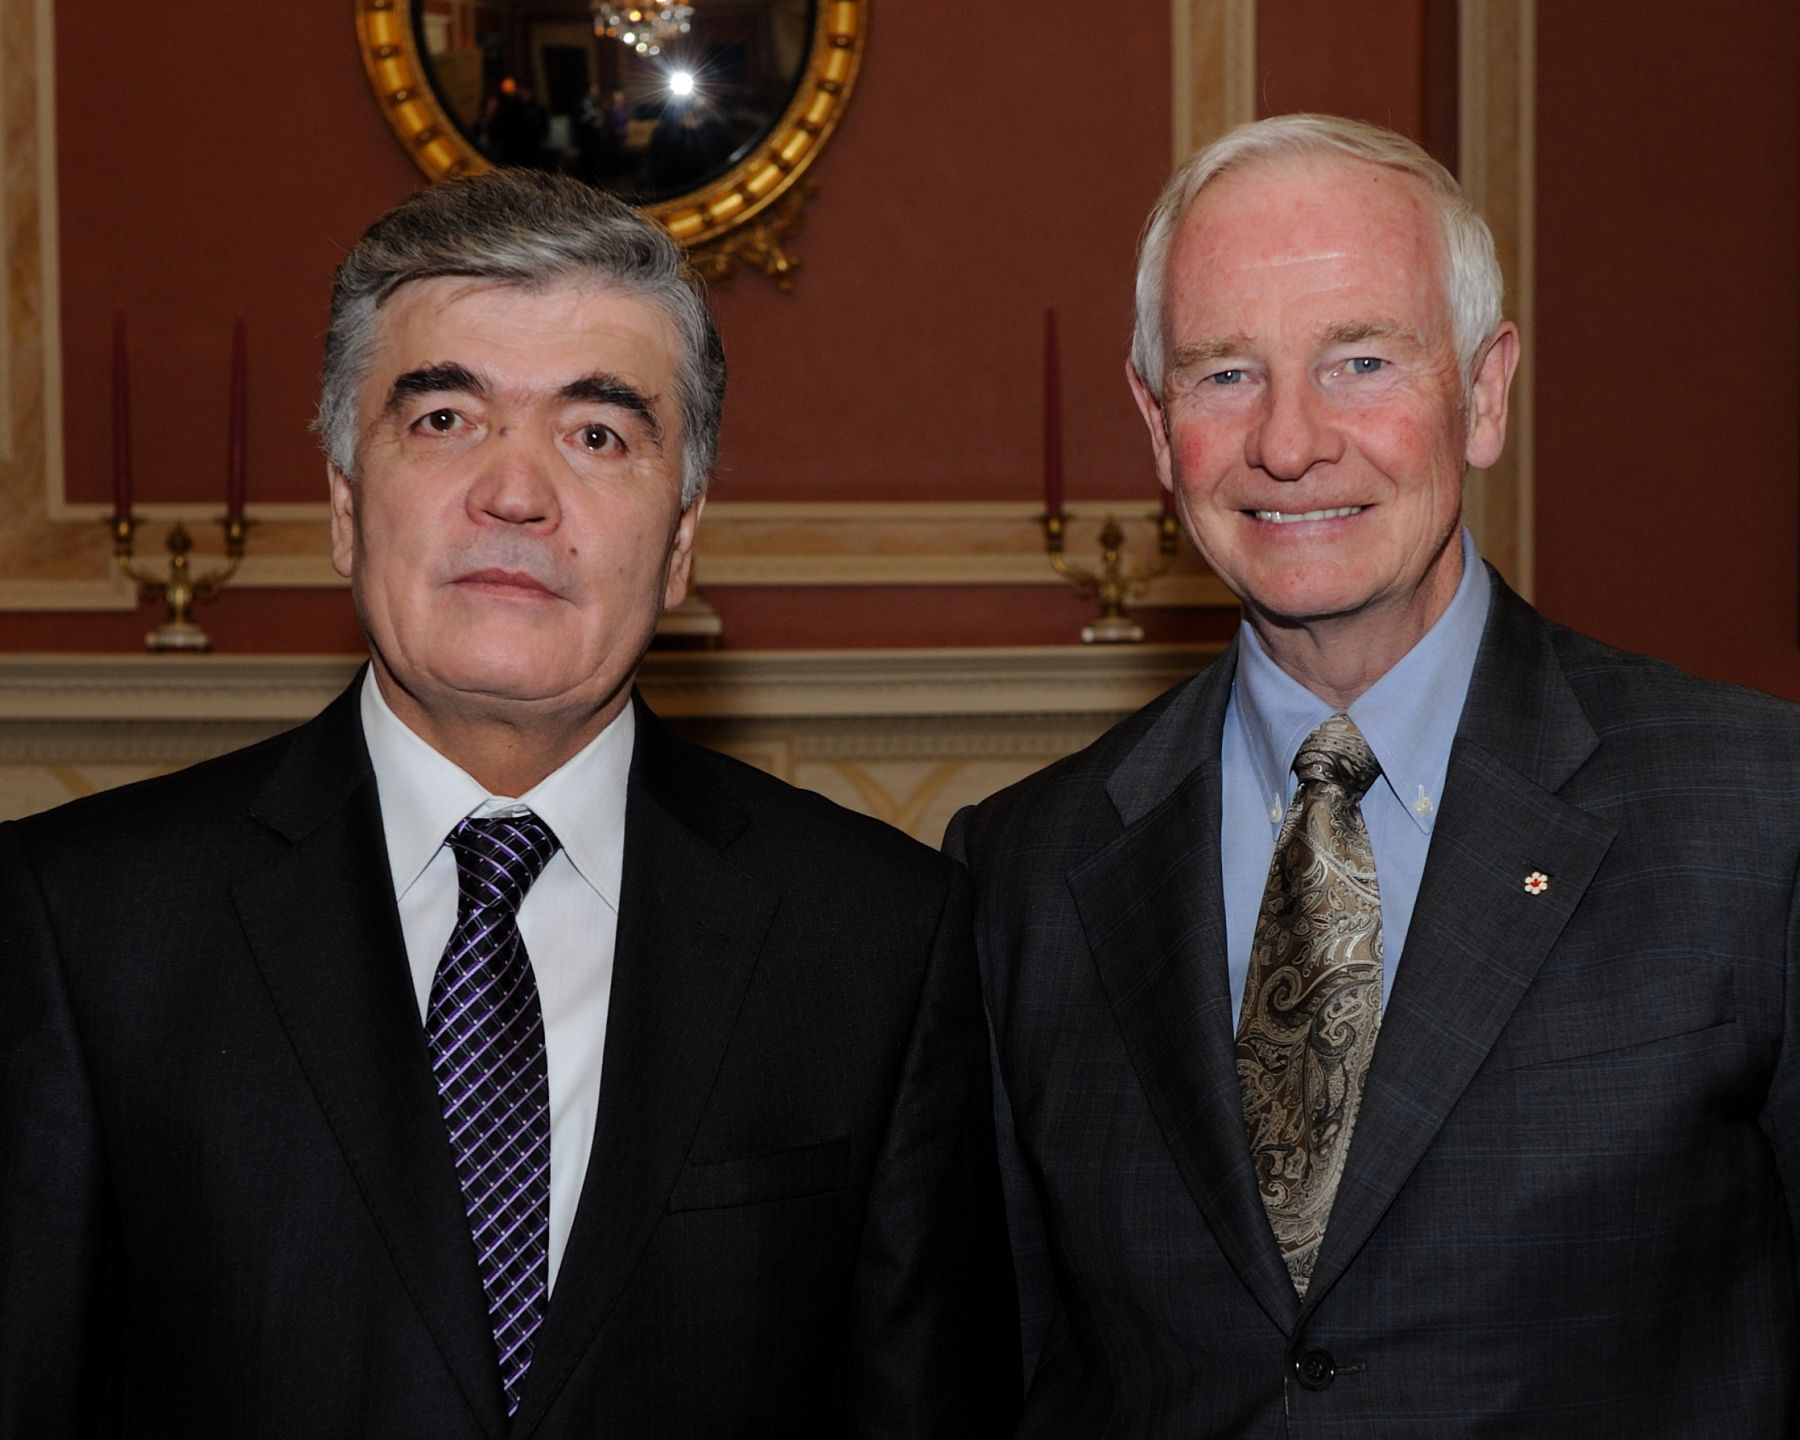 The Governor General received the credentials of His Excellency Ilhomjon Nematov, Ambassador of the Republic of Uzbekistan.